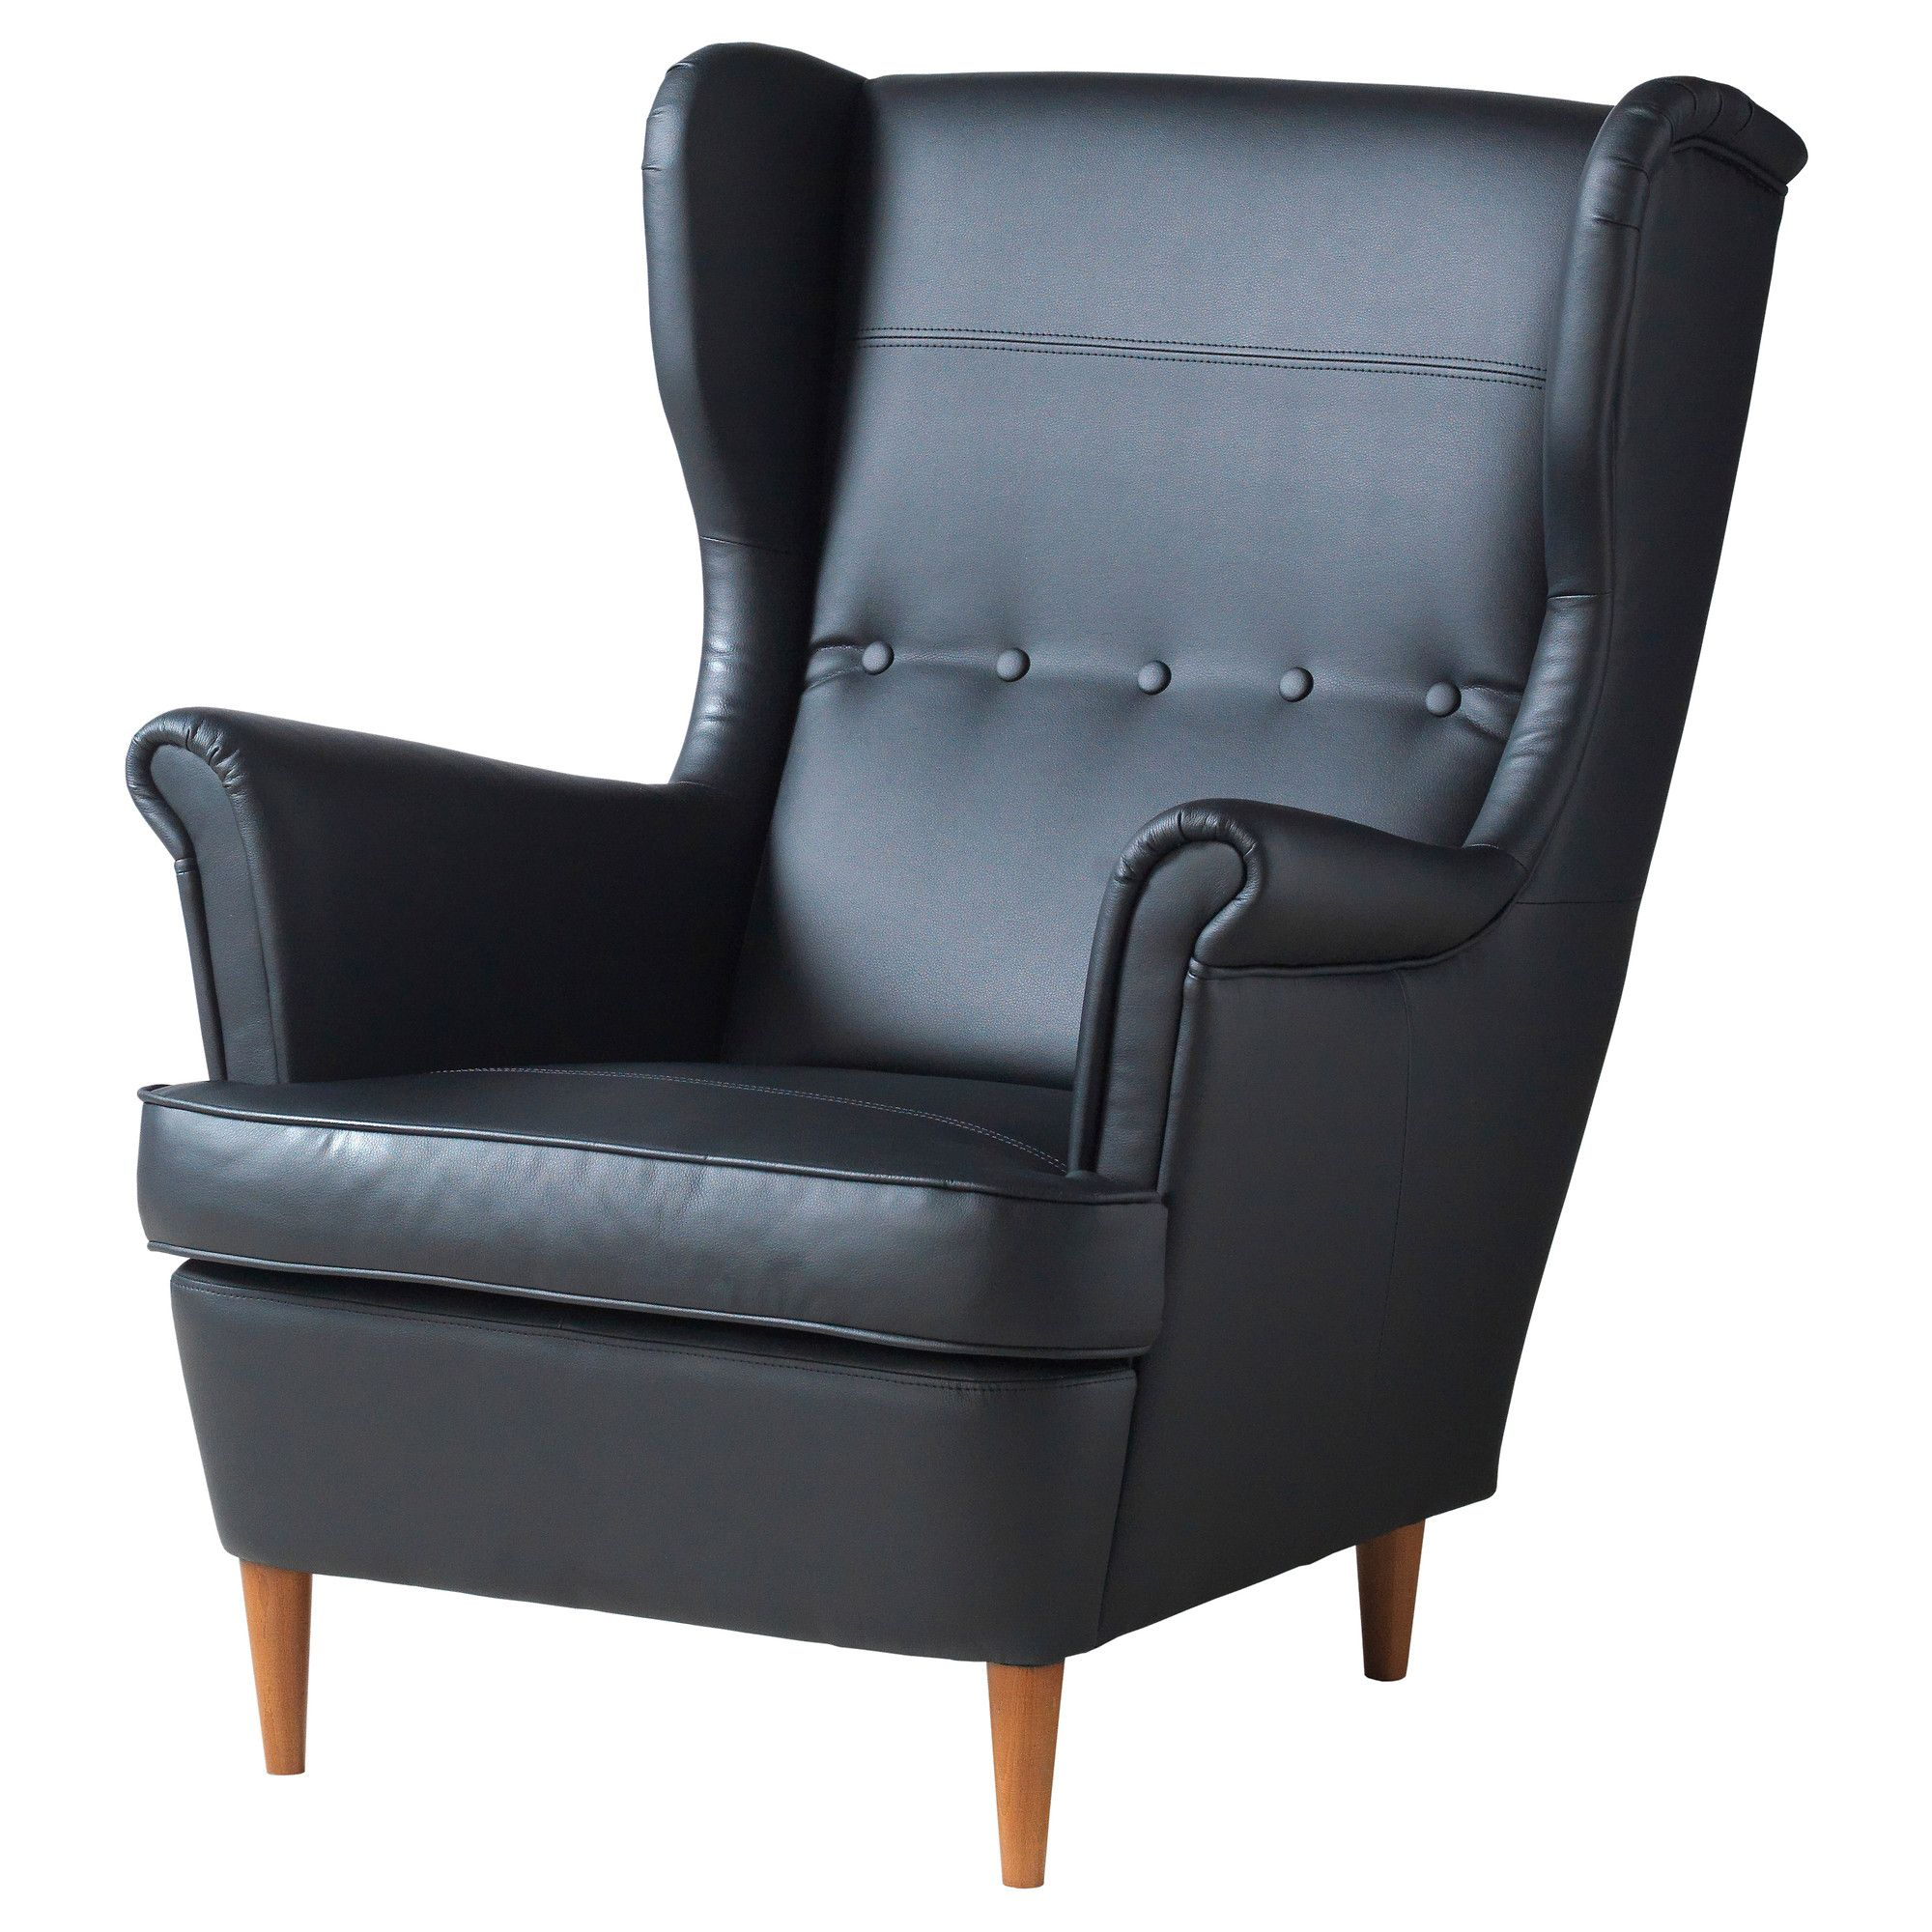 strandmon wing chair oorfauteuil int nederlands ikea my future crib pinterest. Black Bedroom Furniture Sets. Home Design Ideas